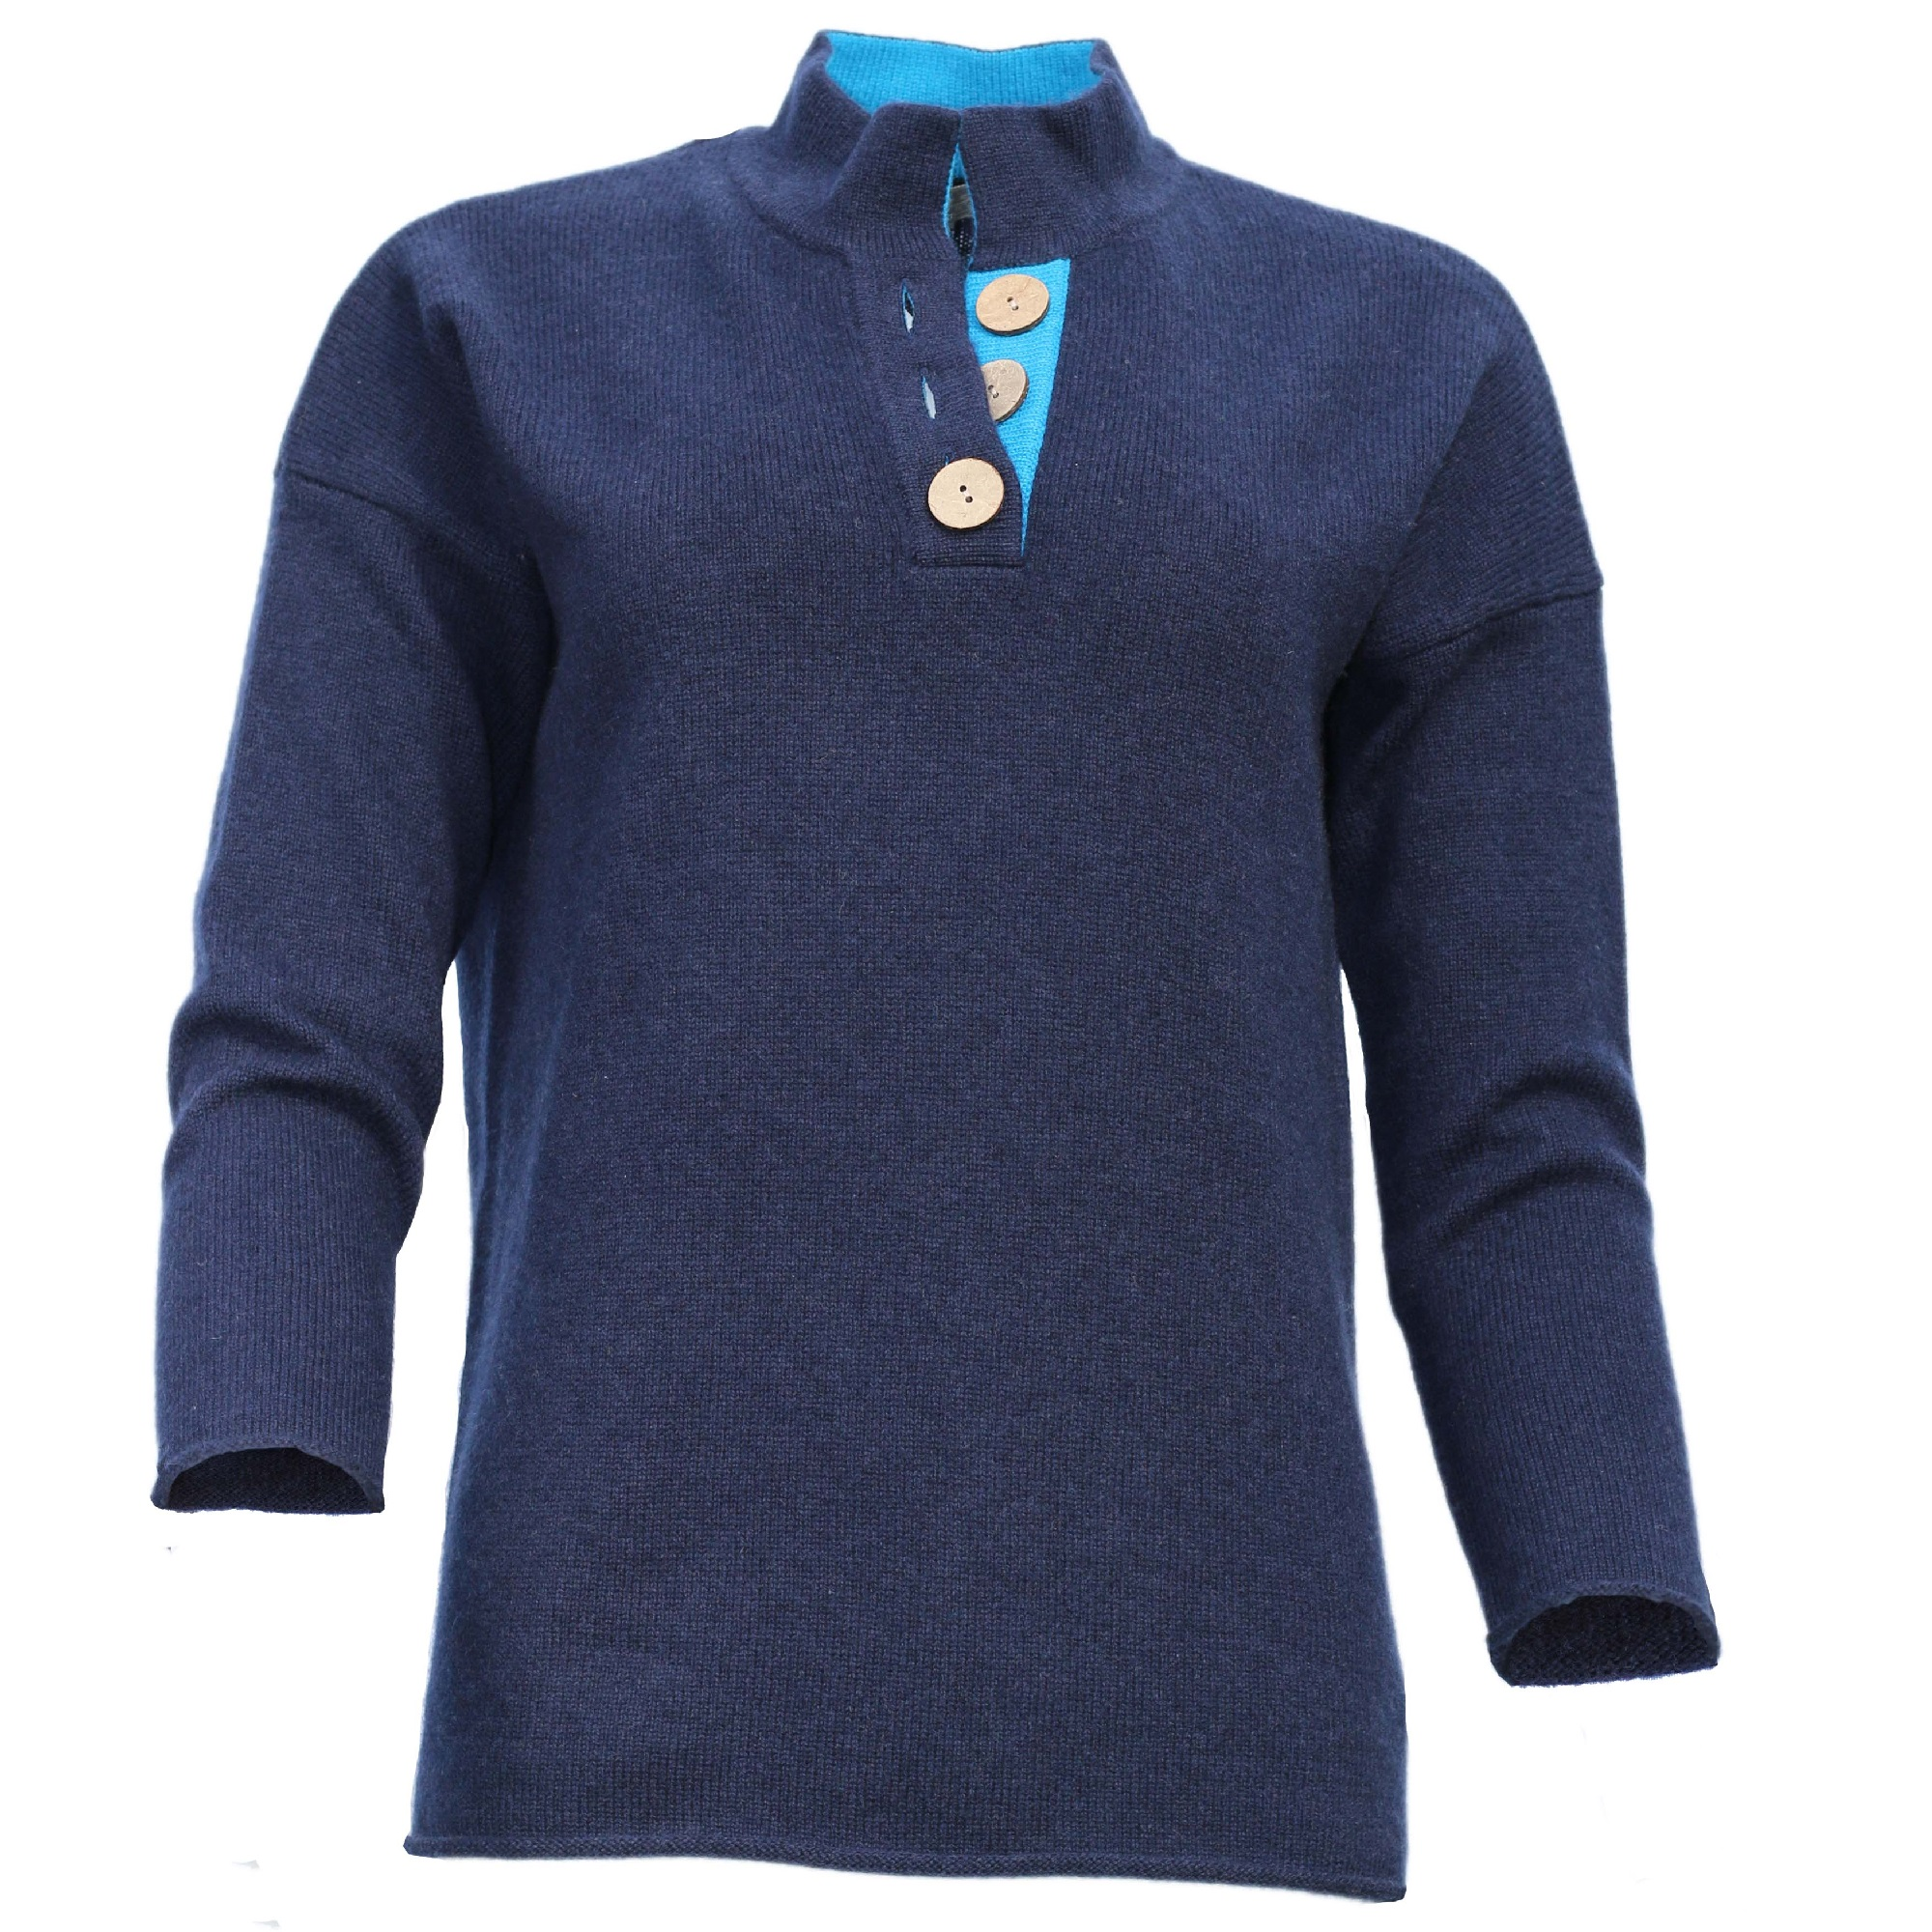 High Collar Jumper – Navy/Turquoise